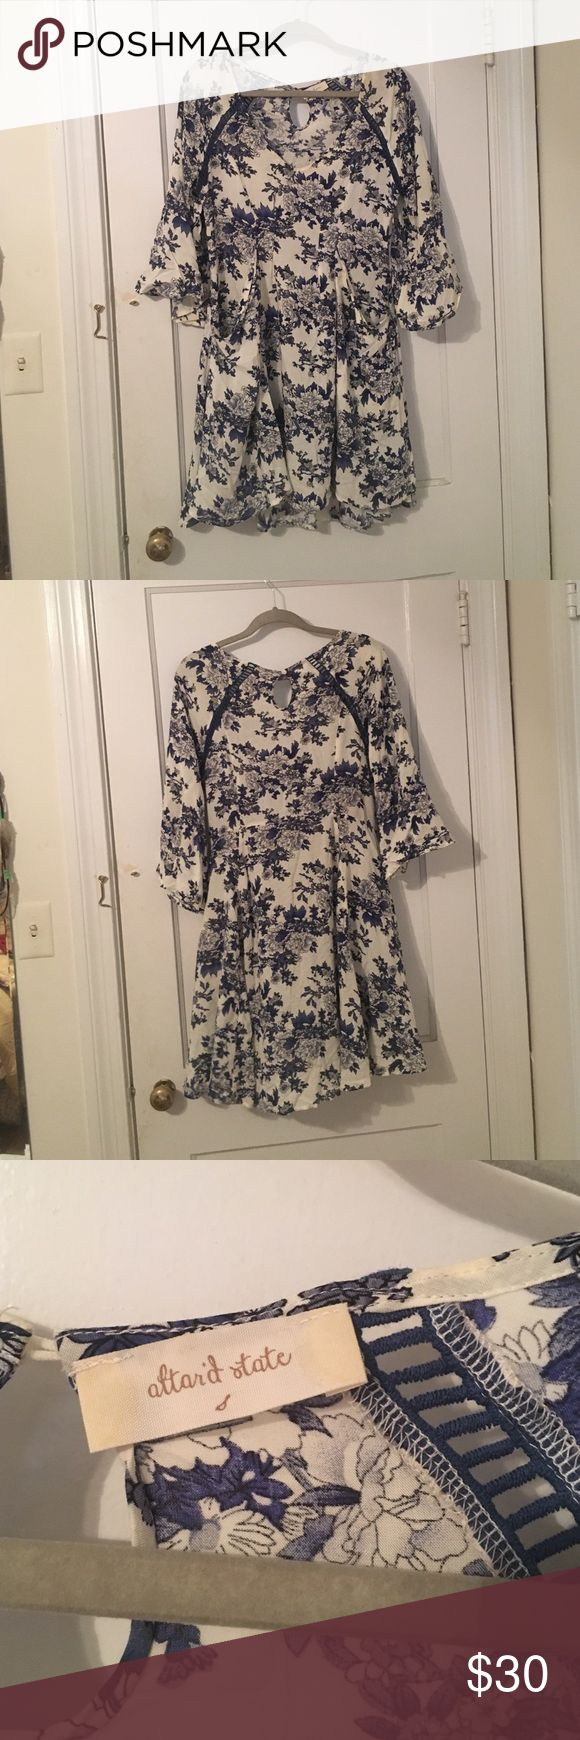 3/4 Sleeve Dress Blue and white flower pattern dress with pockets and bell sleeves Altar'd State Dresses Mini